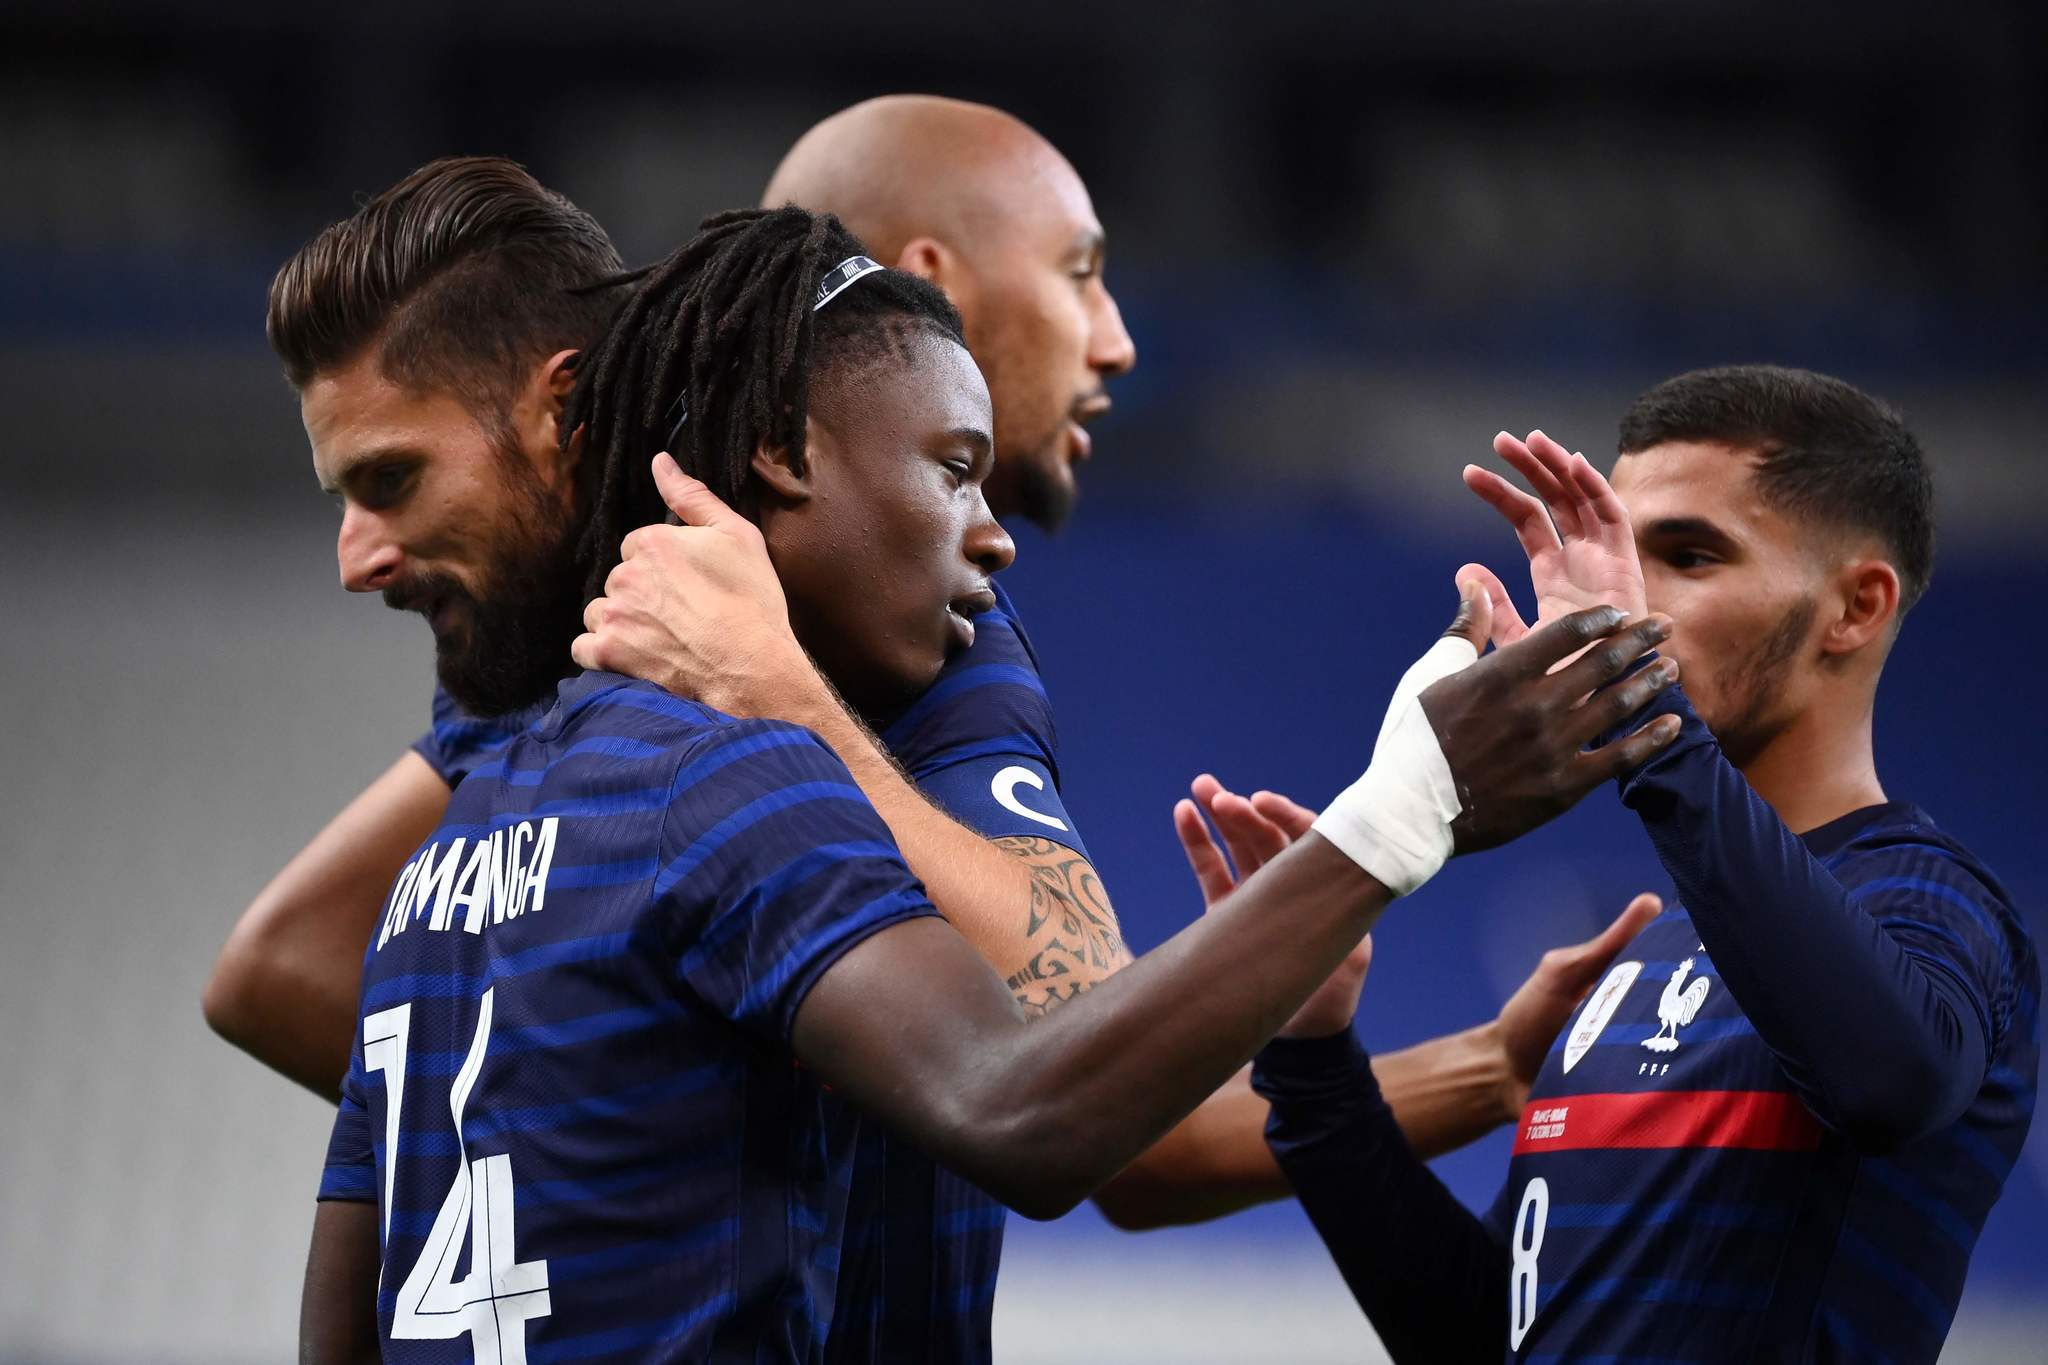 Frances midfielder Eudardo lt;HIT gt;Camavinga lt;/HIT gt; (C) is congratulated by teammates after scoring a goal during the International friendly football match between France and Ukraine, on October 7, 2020 in Saint-Denis, outside Paris. (Photo by FRANCK FIFE / AFP)